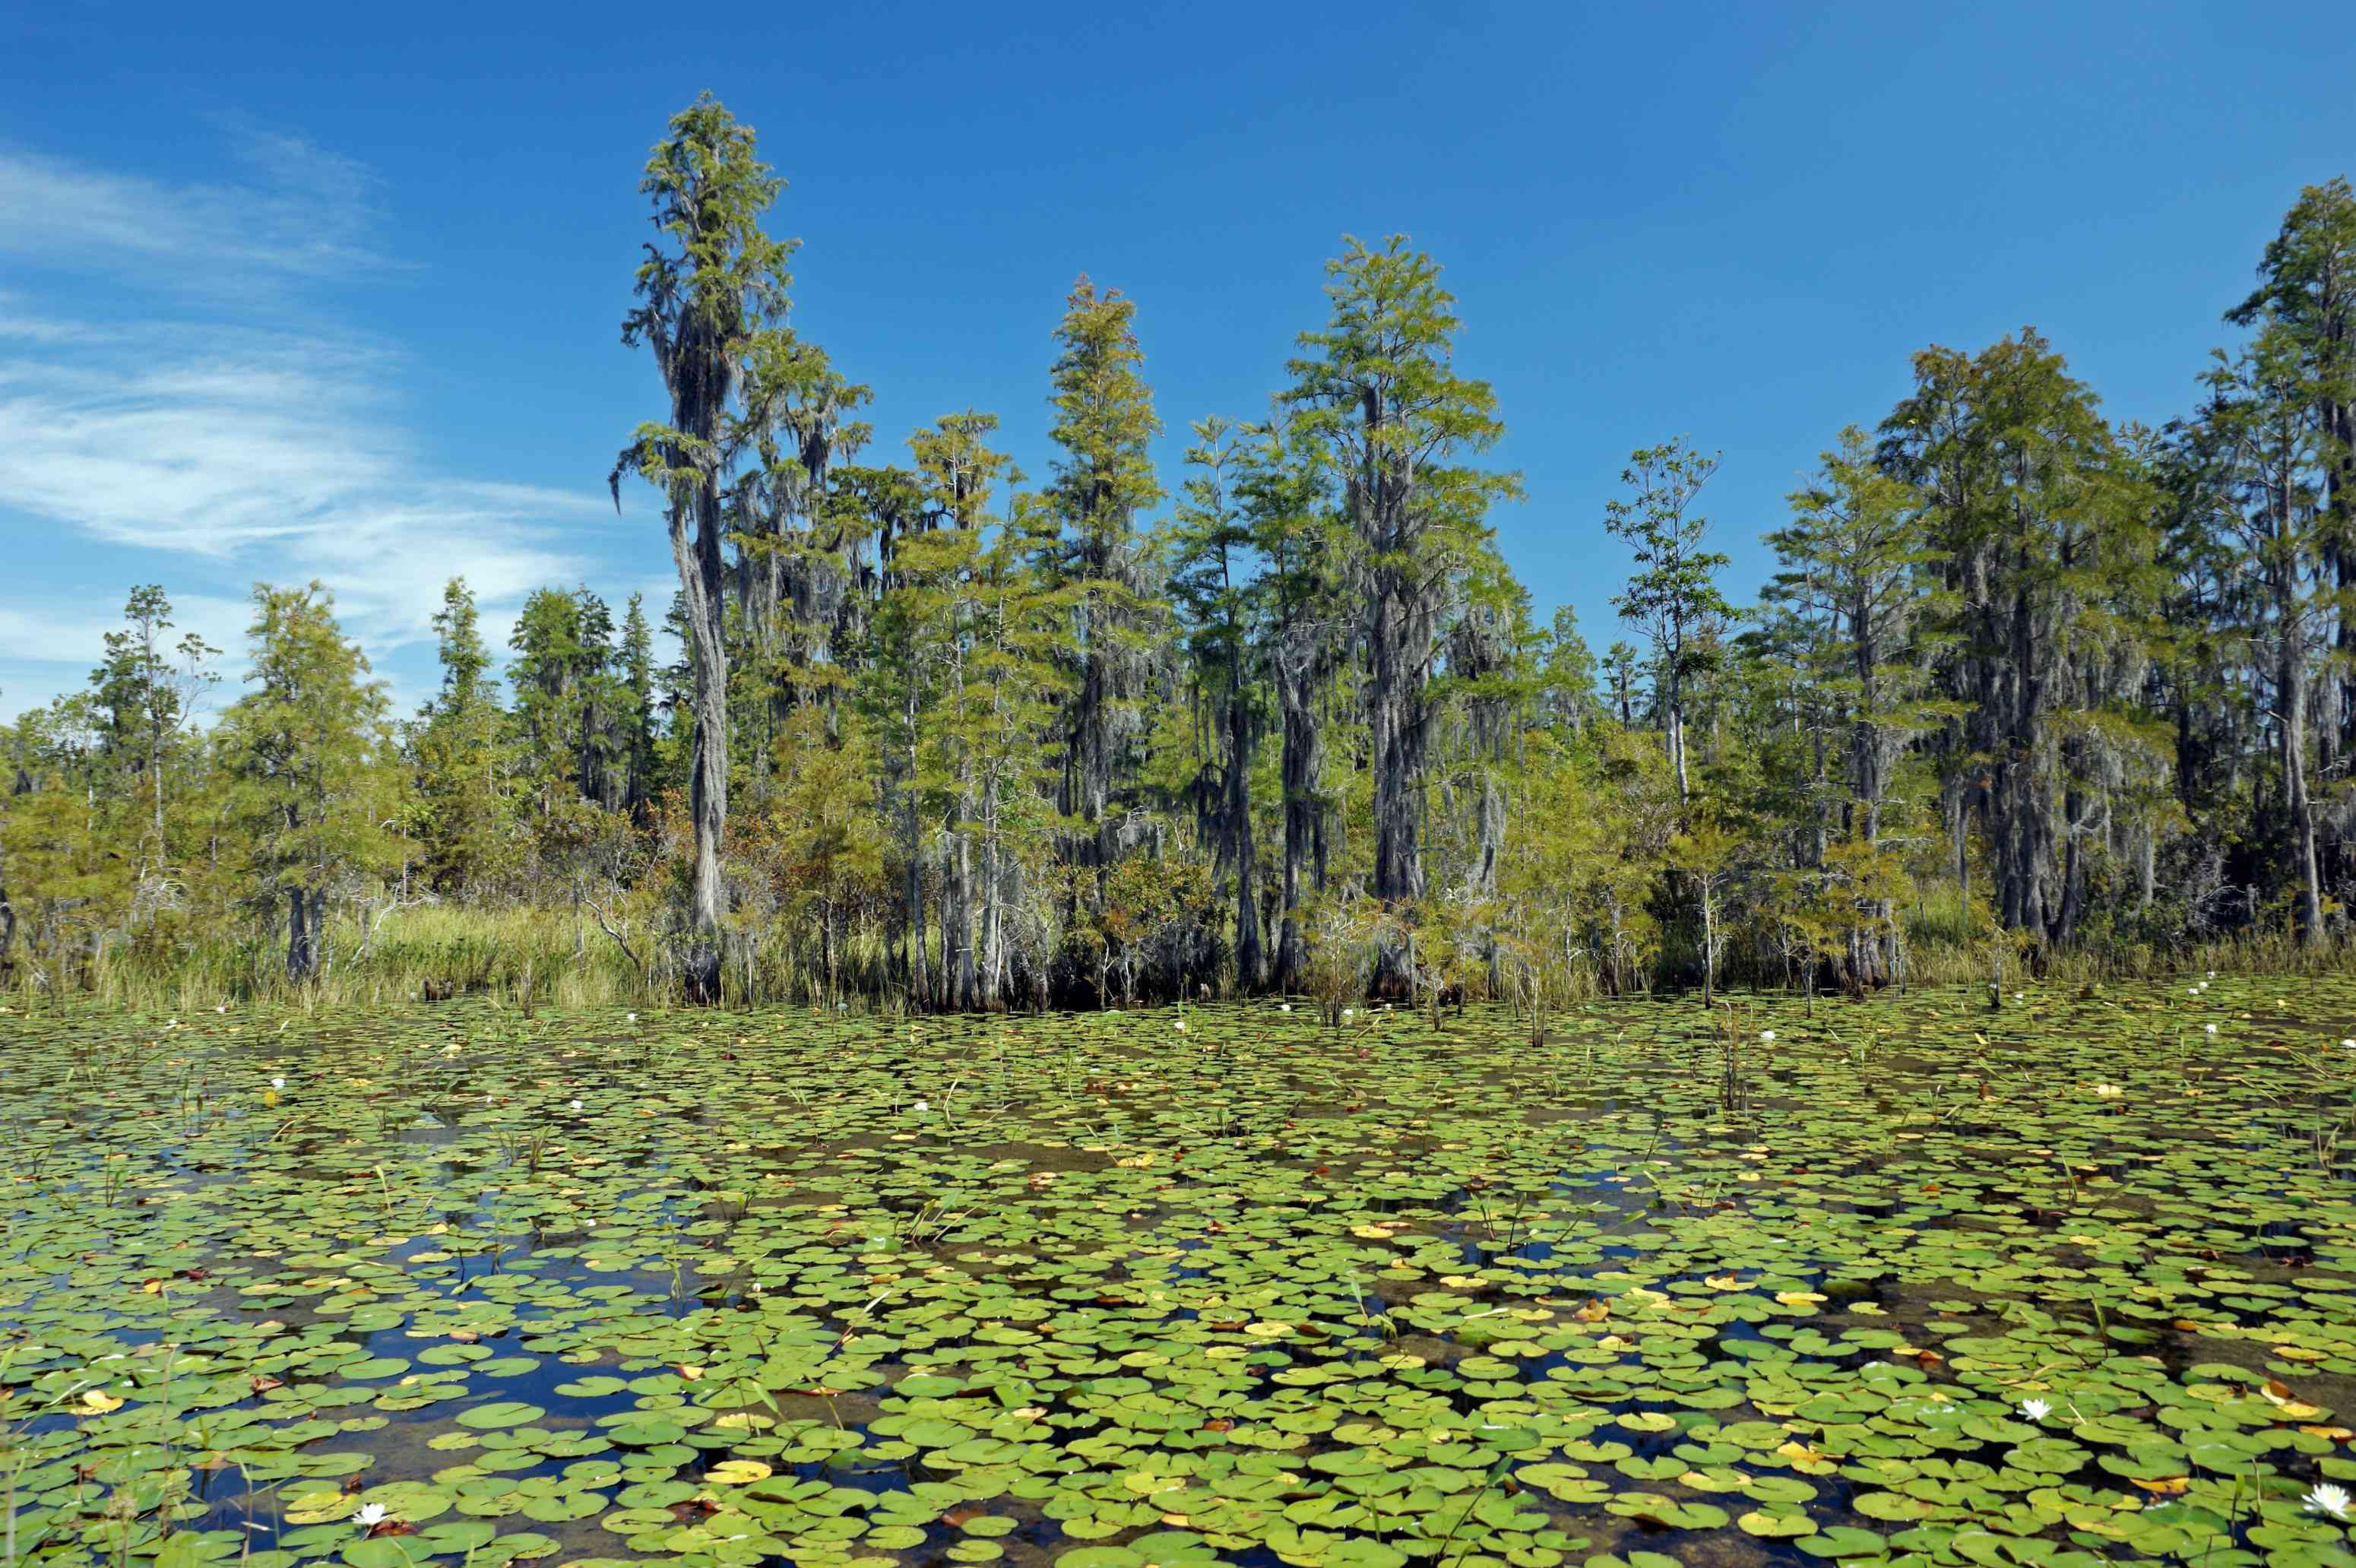 Okefenokee swamp filled with green lily pads on the water and tall green trees in the distance